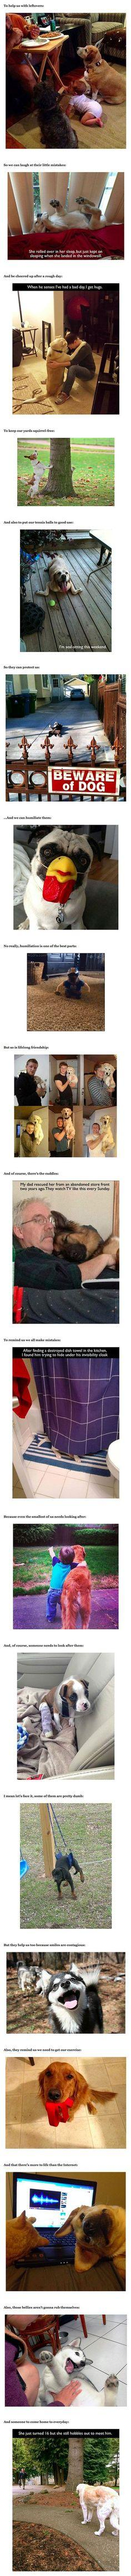 Why dogs are the best of all things: Doggie, Best Friends, Sweet, Pet, Mans Best Friend, Fur Babies, Animals 3